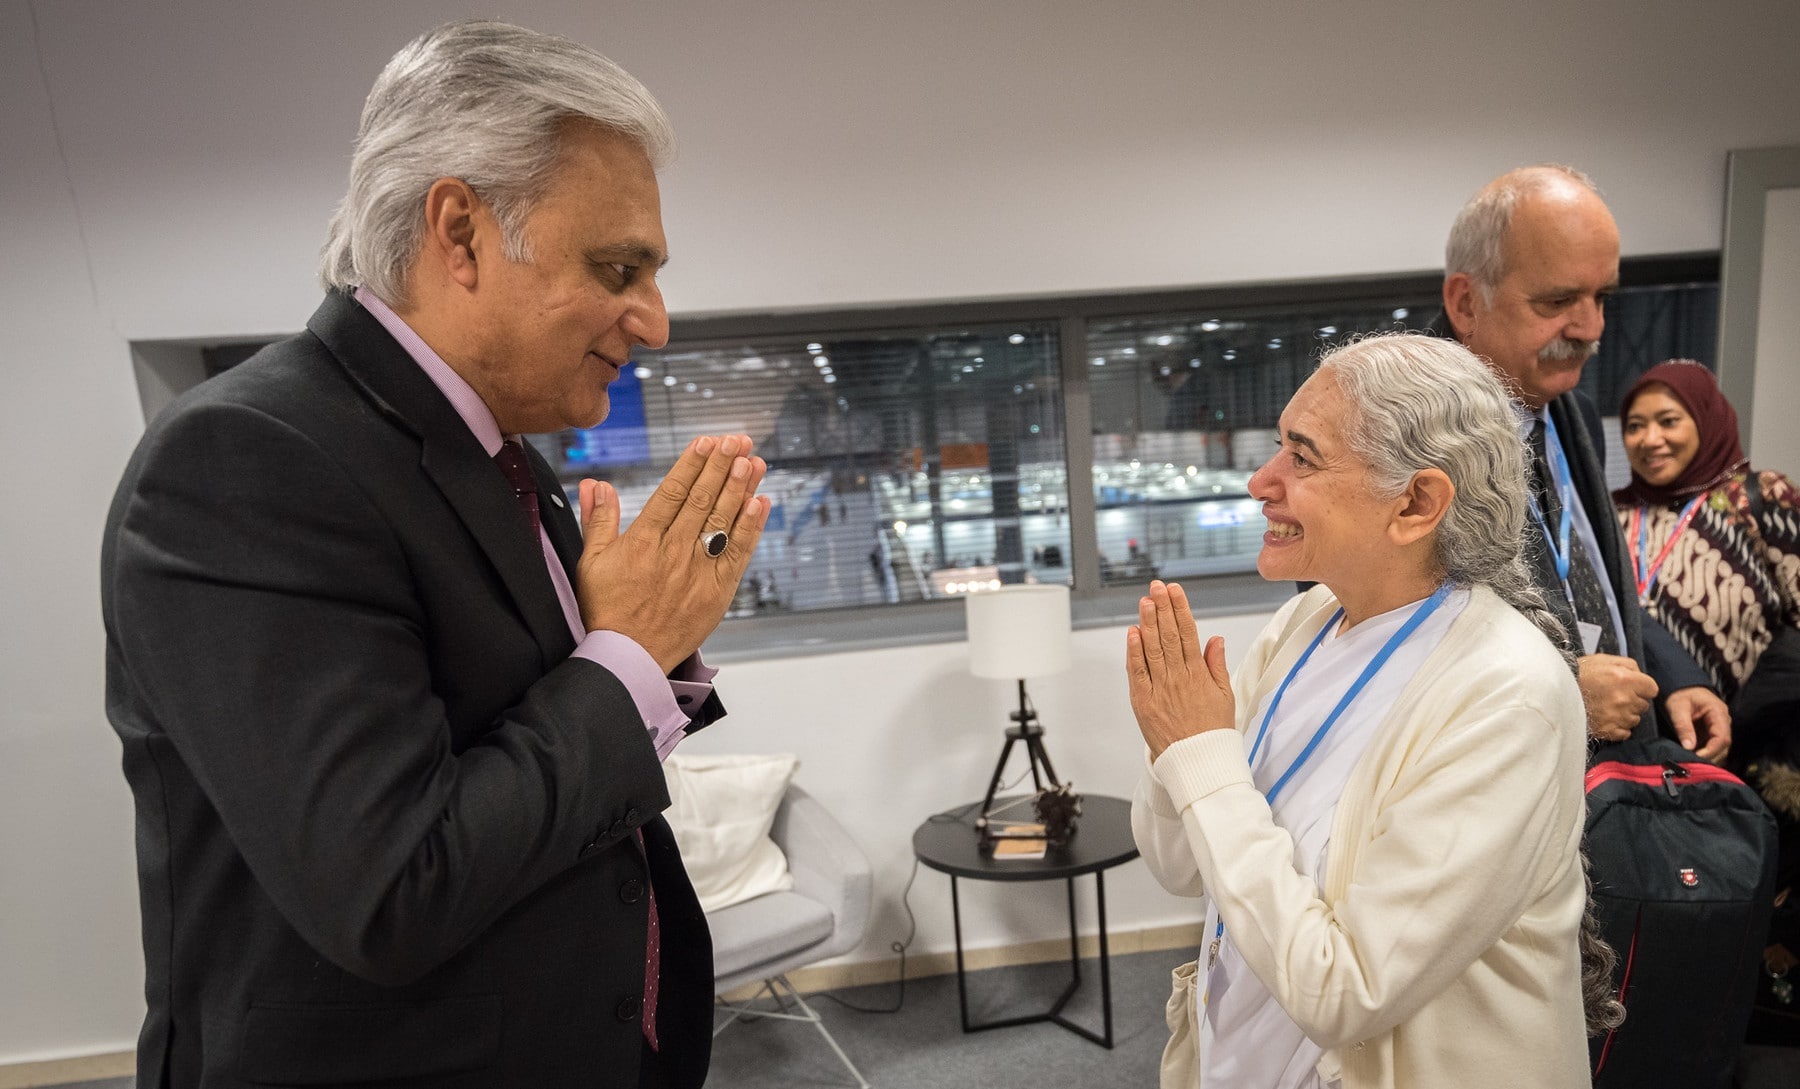 UNFCCC Deputy Executive Secretary greeting Sister Jayanti